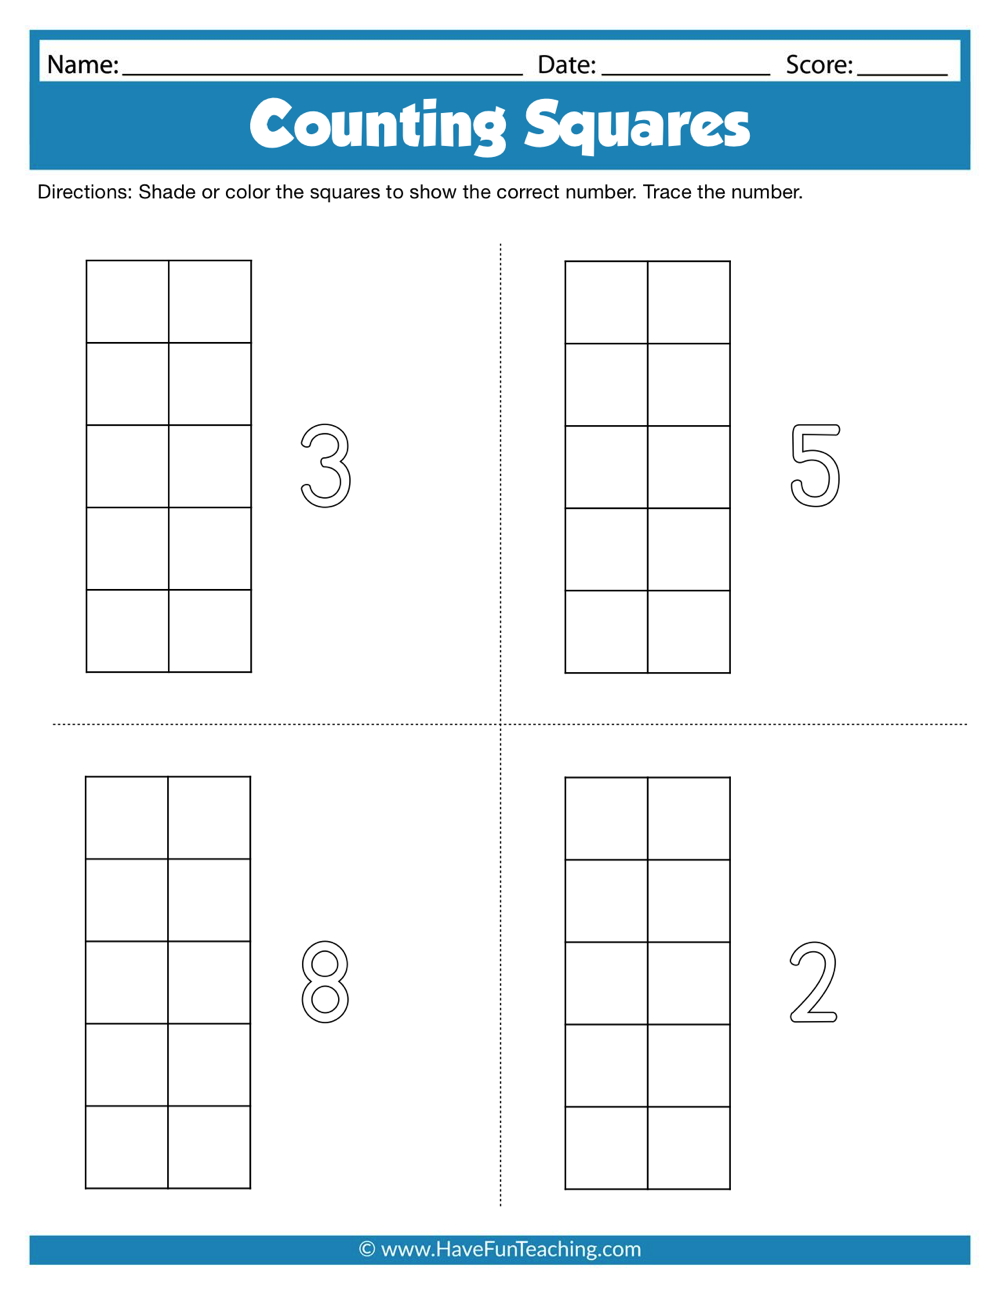 Counting Squares Worksheets | Have Fun Teaching